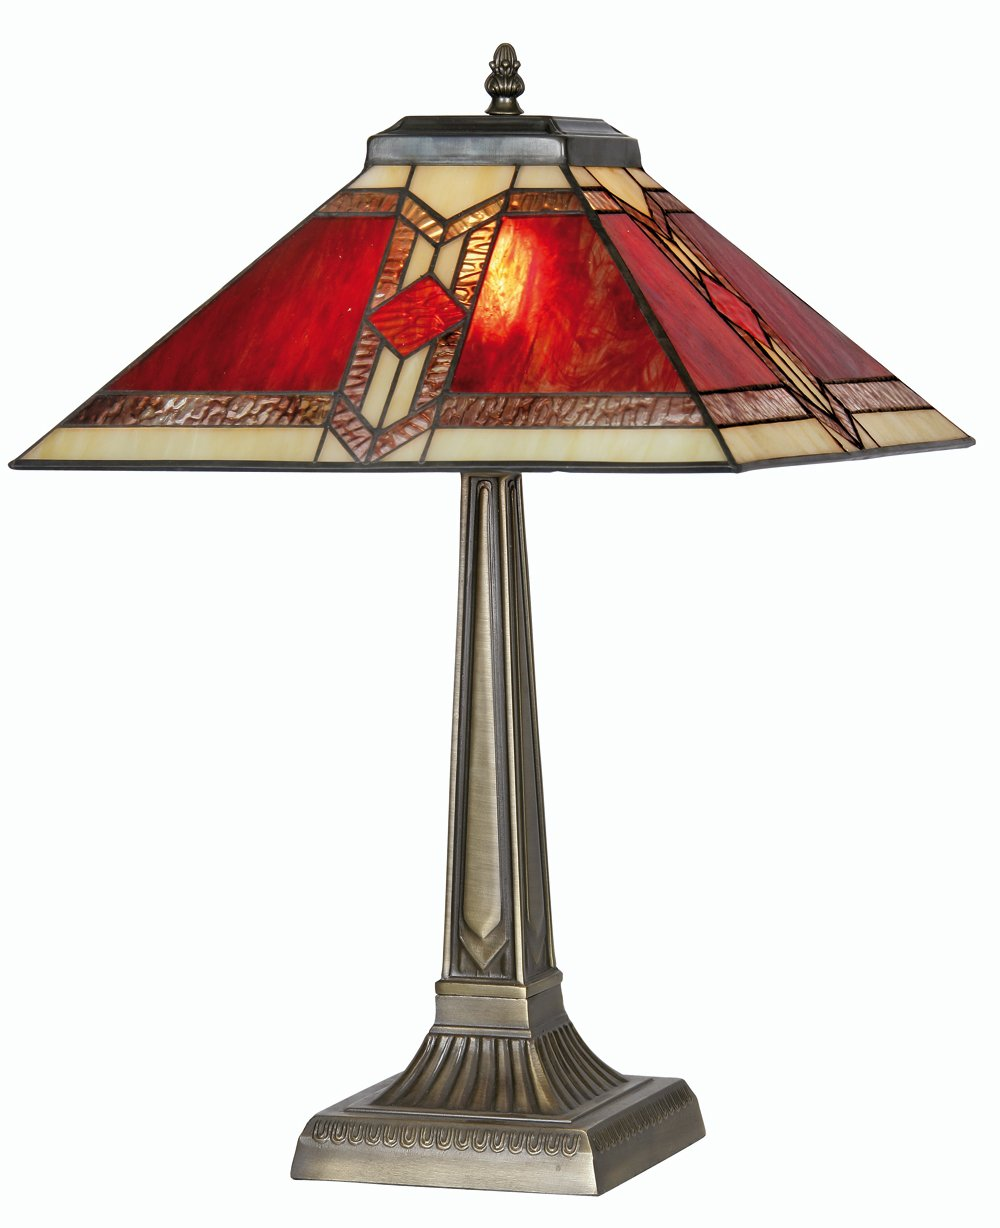 Oaks lighting aztec tiffany table lamp amazon lighting aloadofball Images